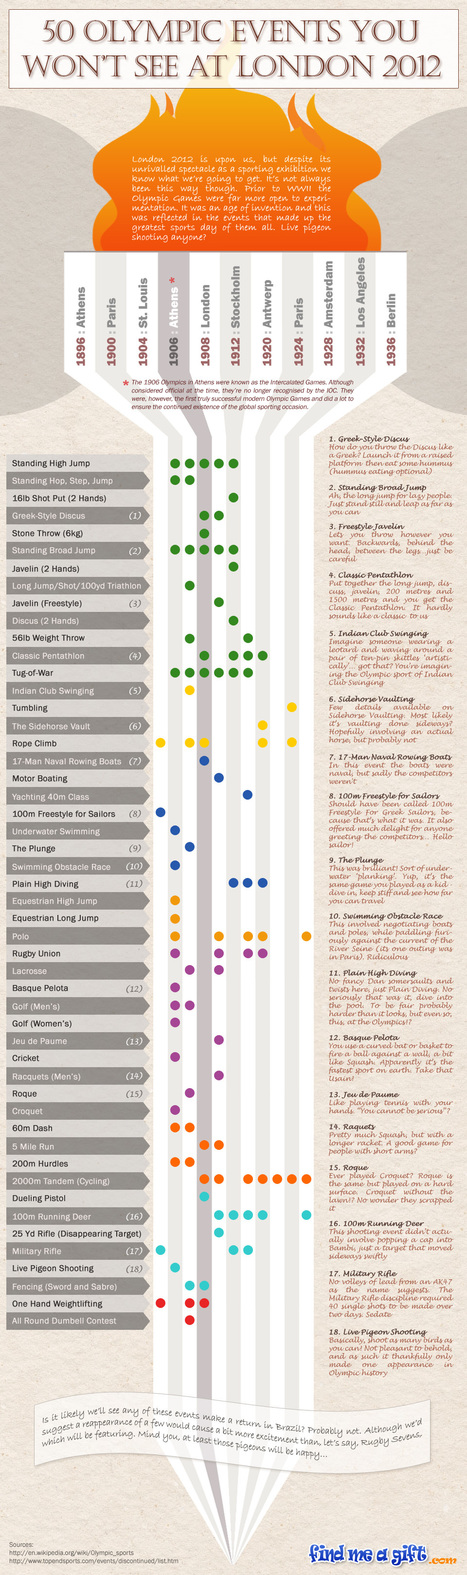 50 Discontinued Olympic Events | Infographic | | Organic Pathos | Scoop.it